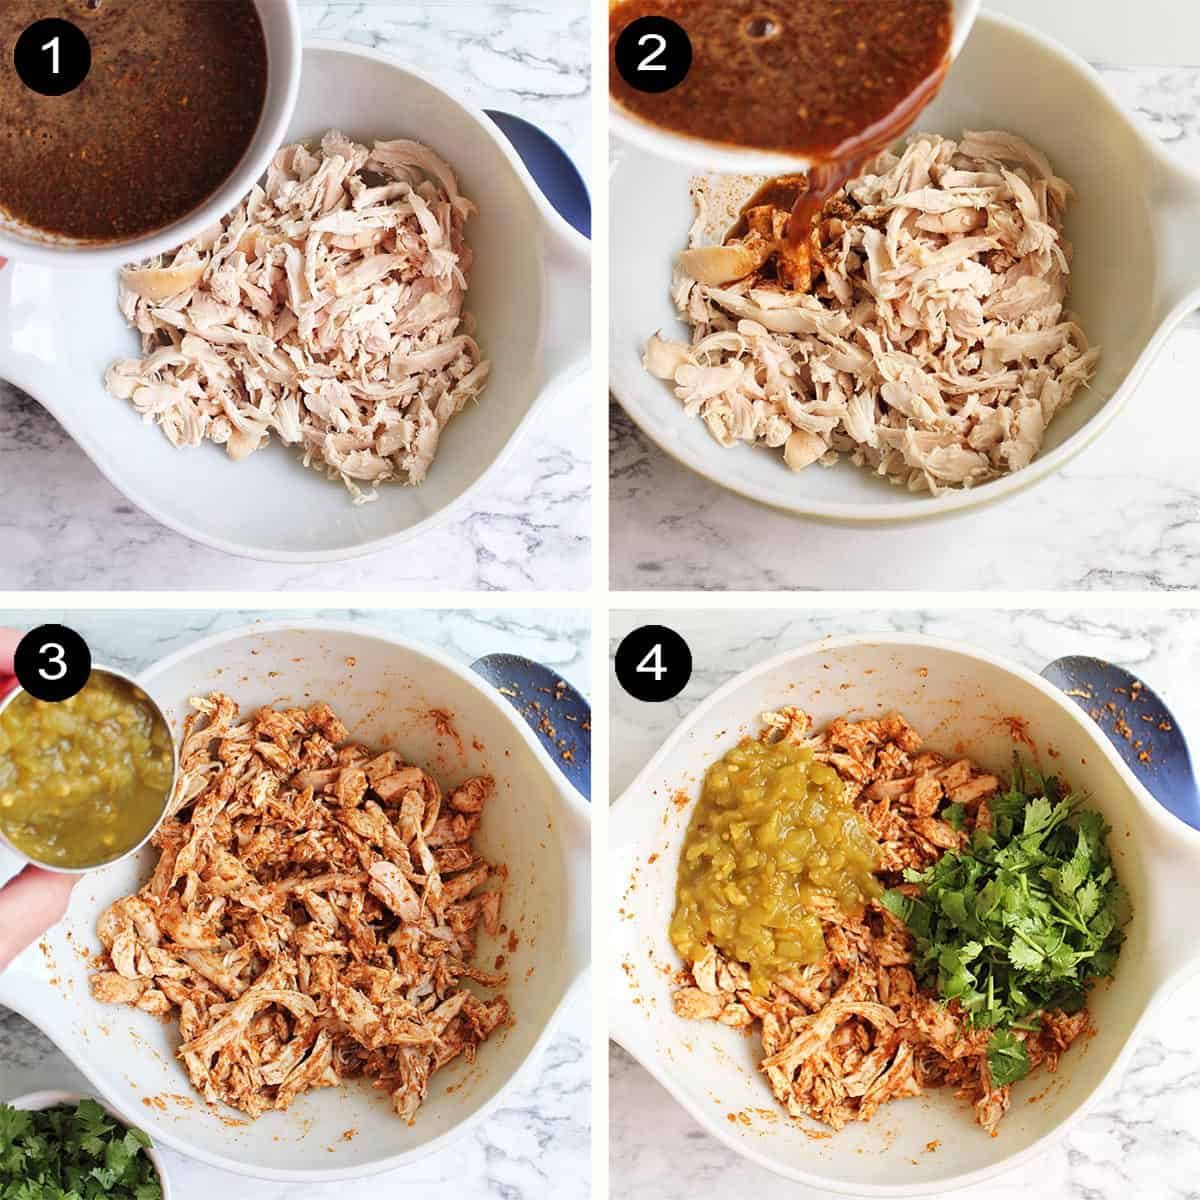 Steps to make chicken enchilada filling.